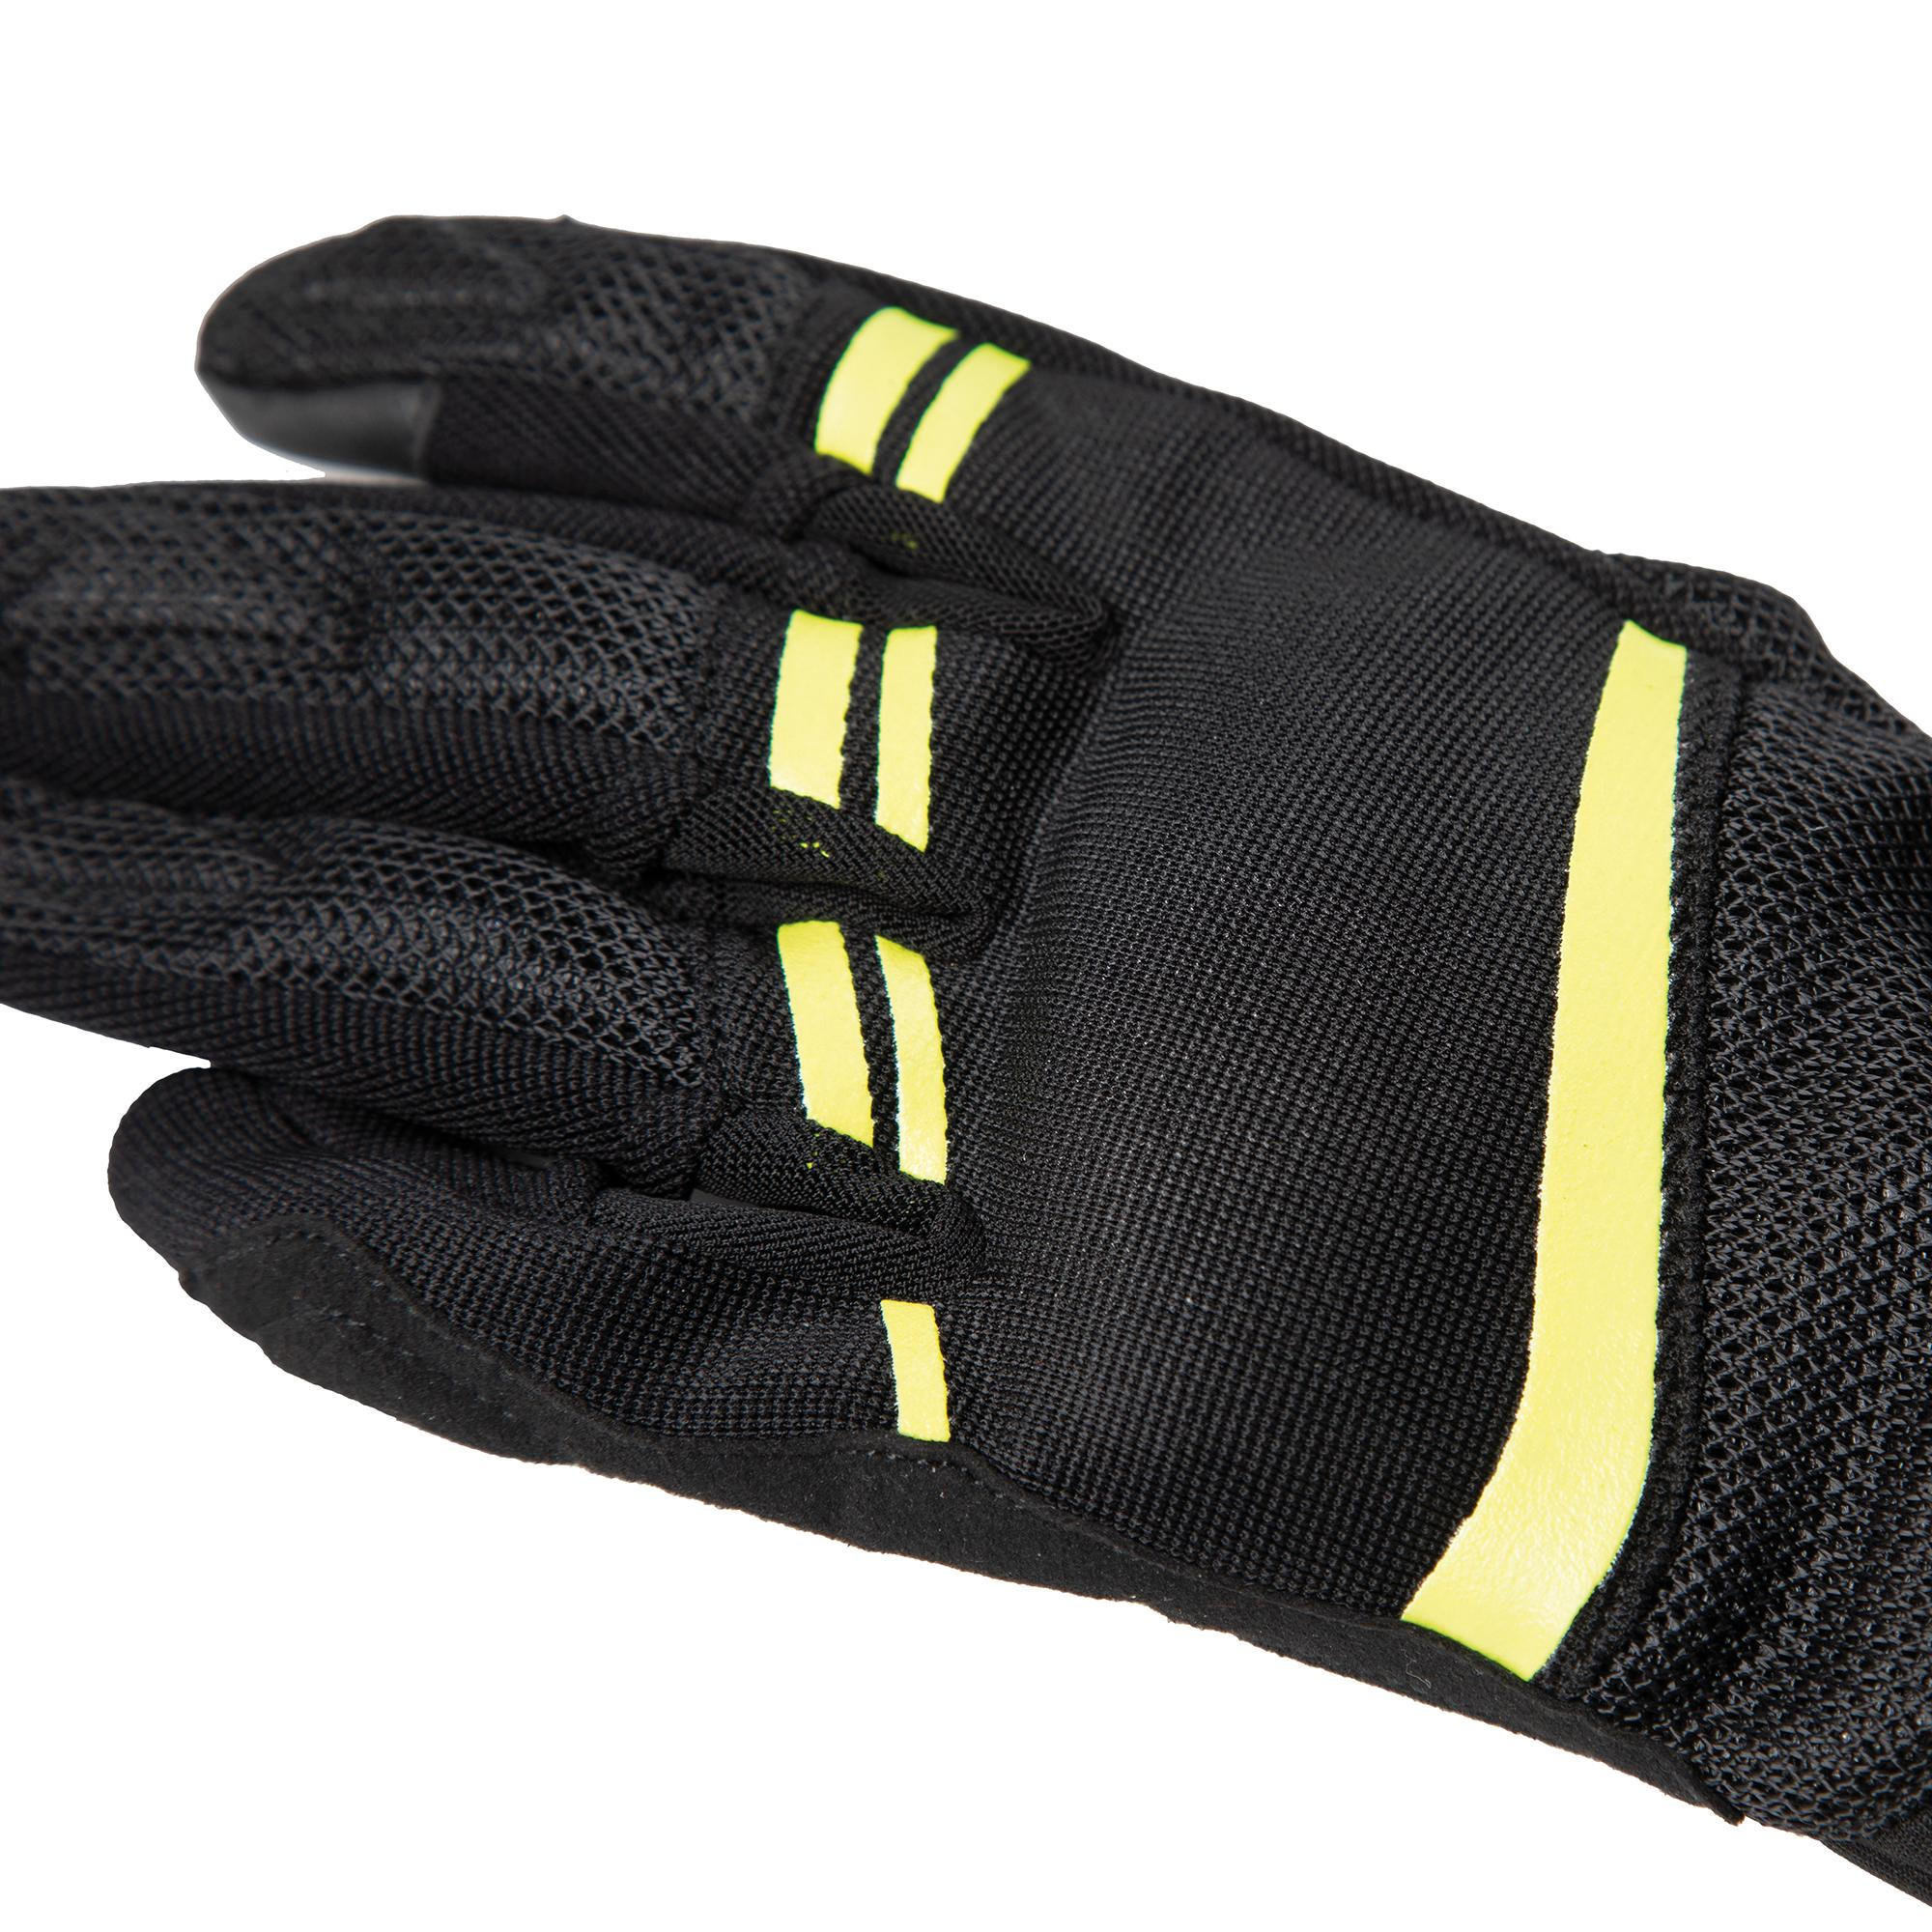 Gloves Lady Penna Black–Fluorescent Yellow